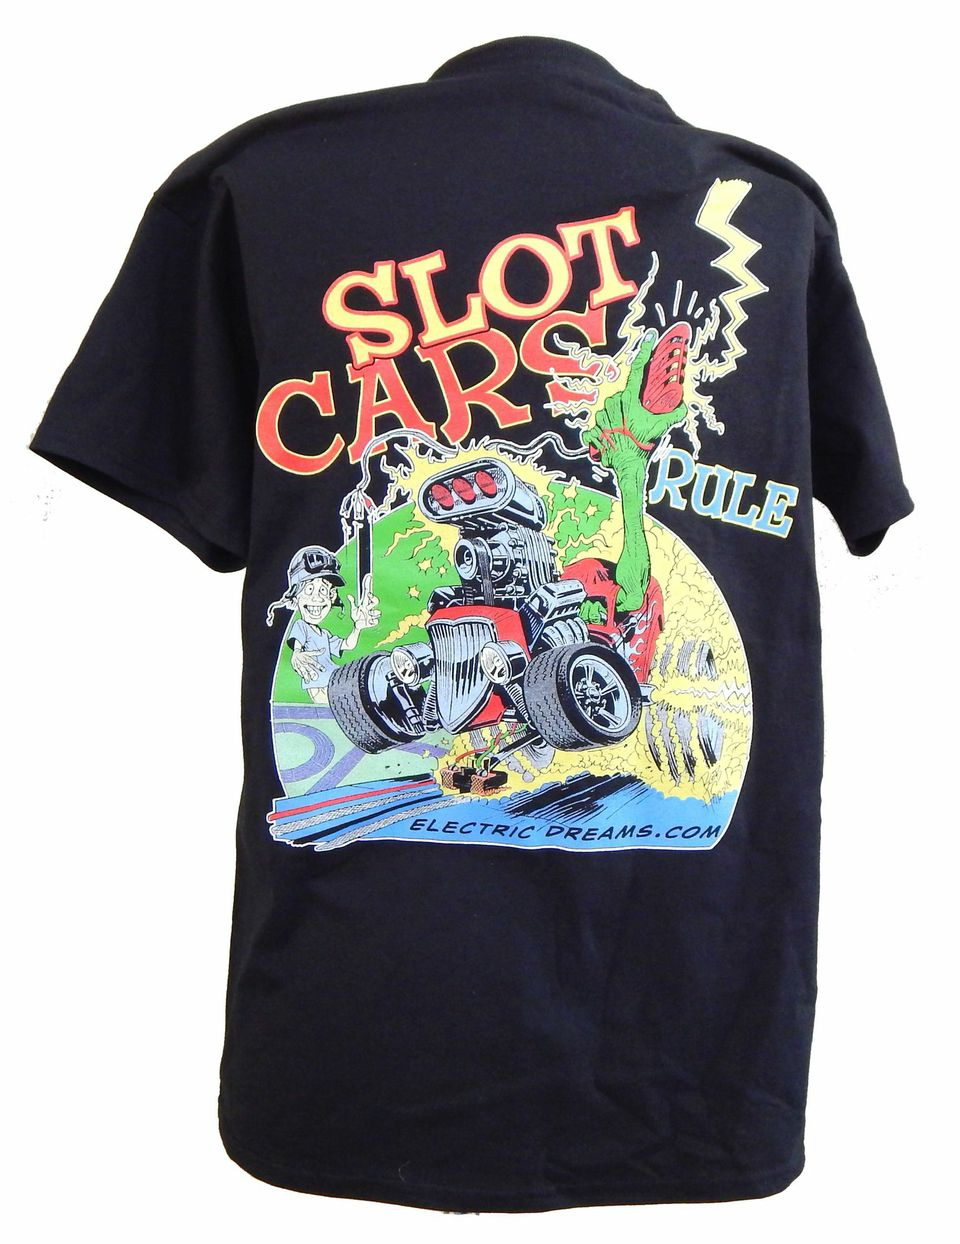 "ETS-1 T-shirt ""Slot Cars Rule"" by Bob Hardin, black, with 4-color art Work---size S"